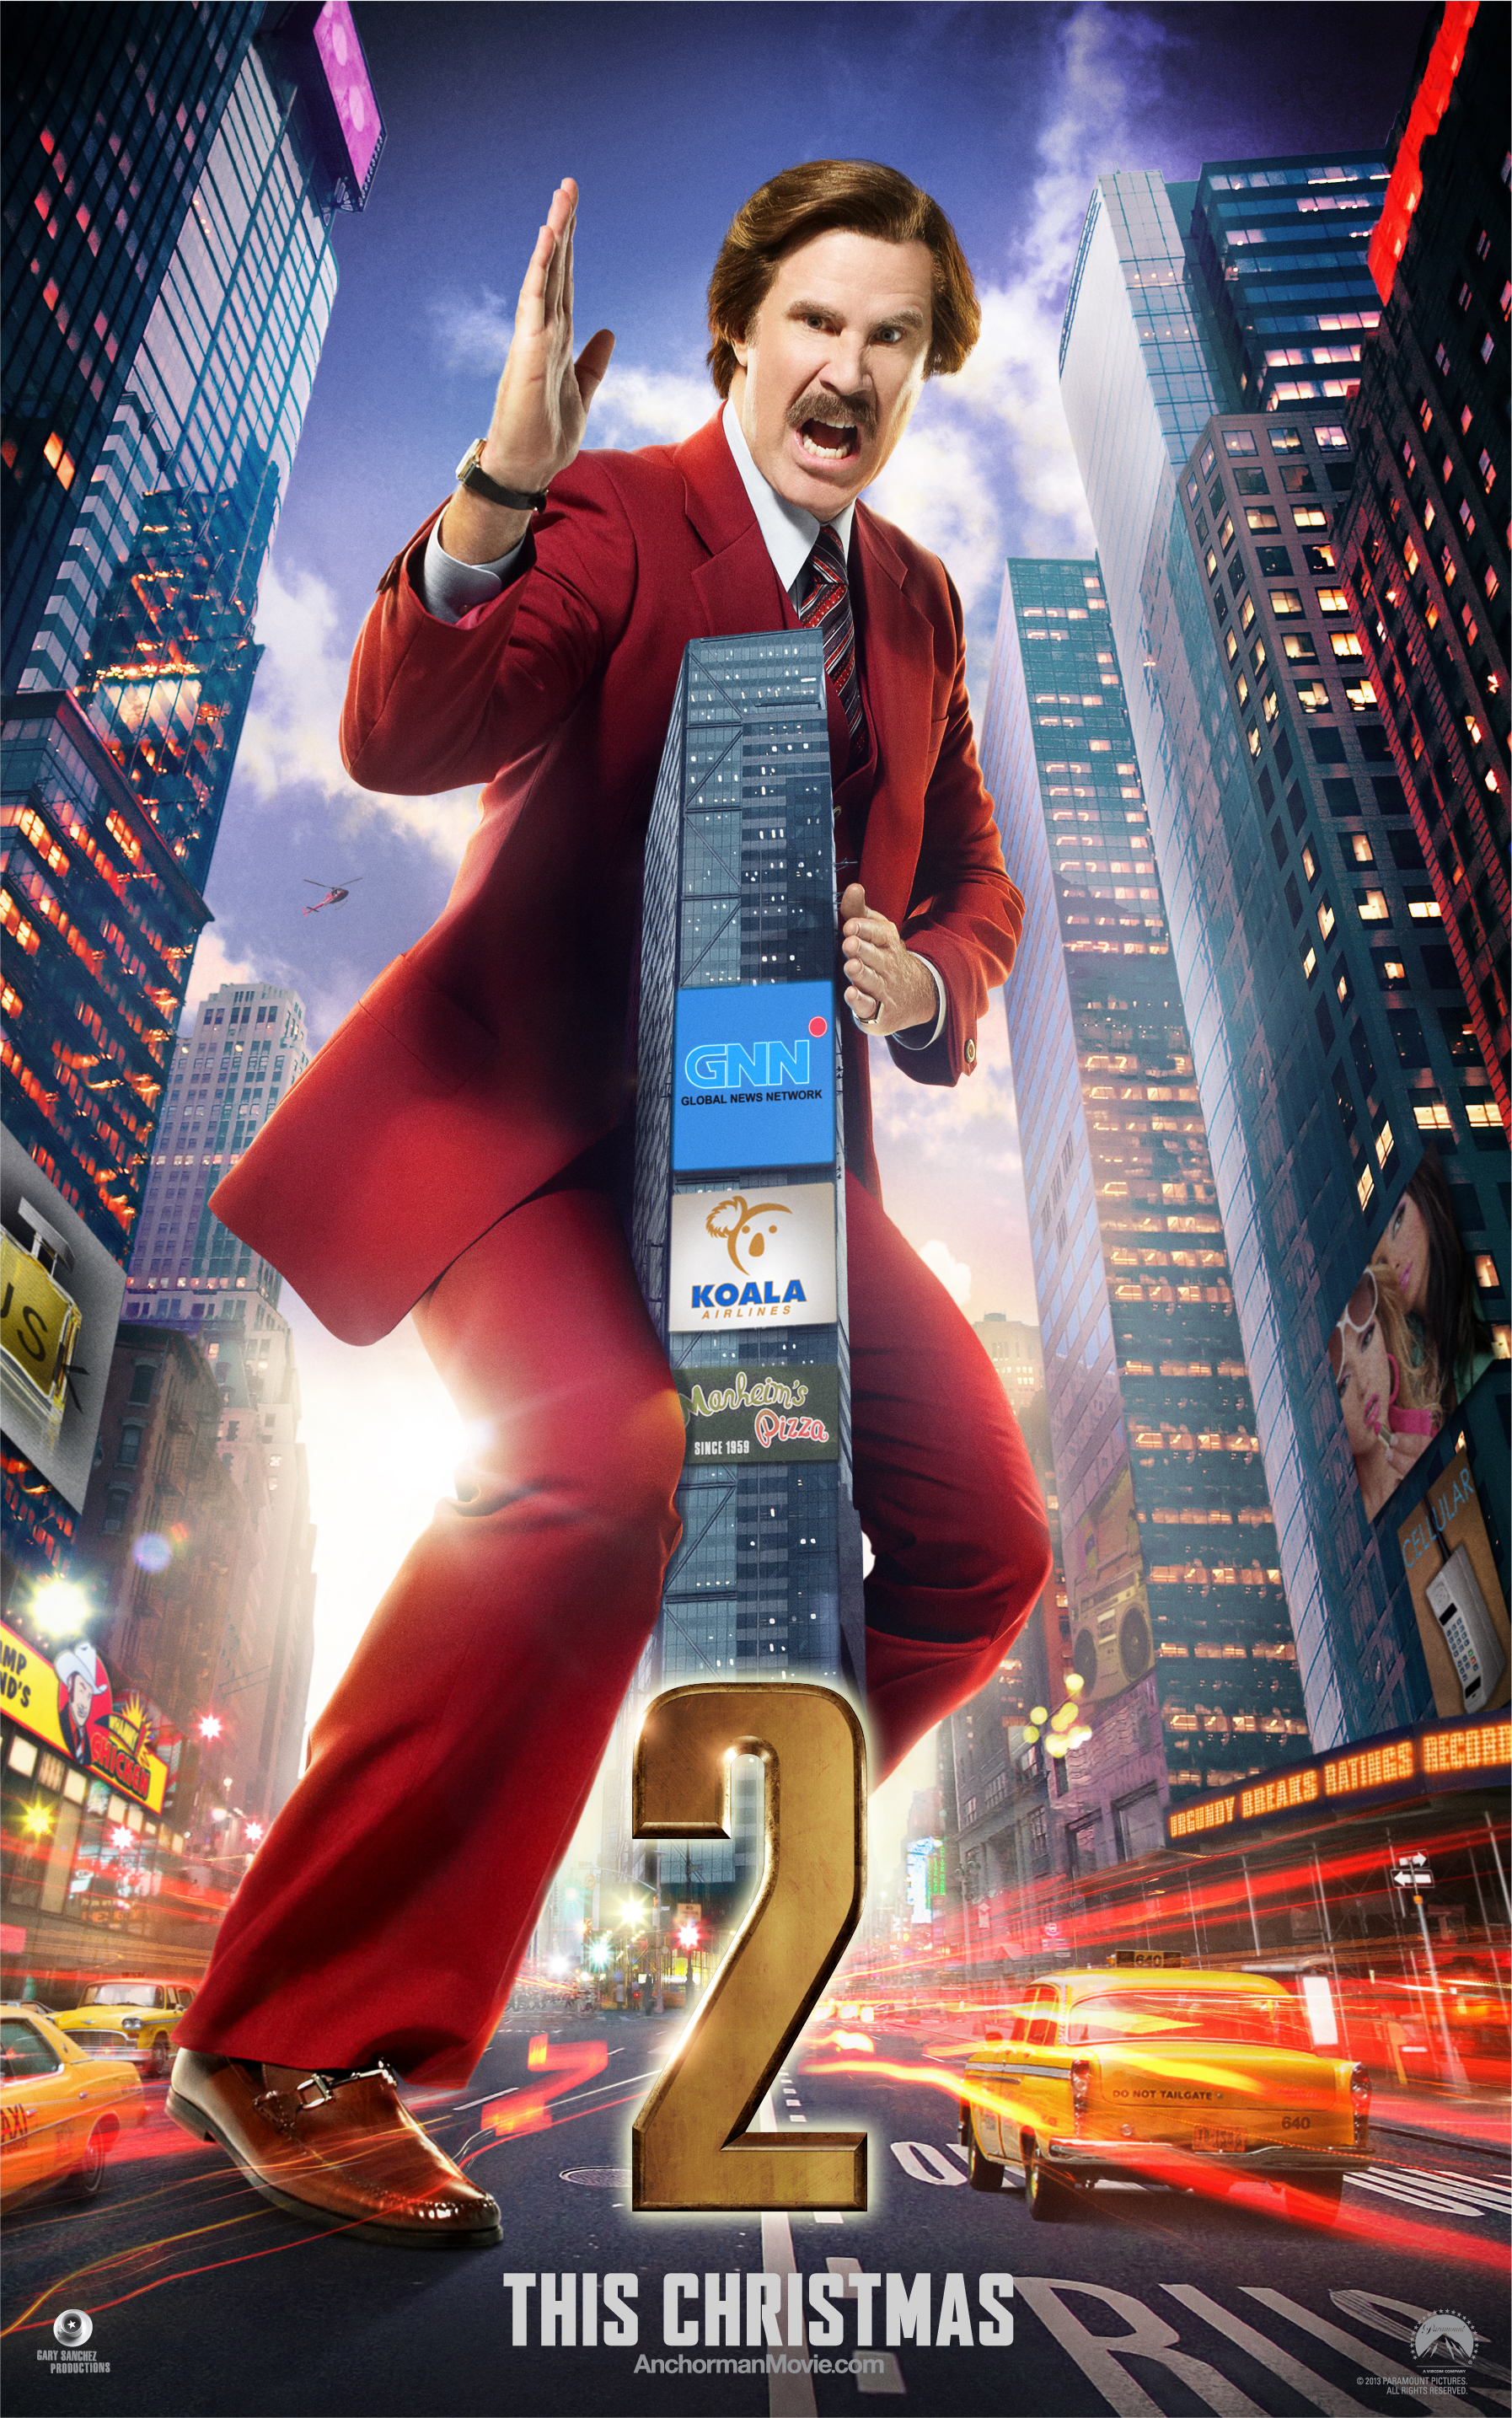 anchorman2rononline1 Anchorman 2: The Legend Continues Builds Legacy with Character Posters